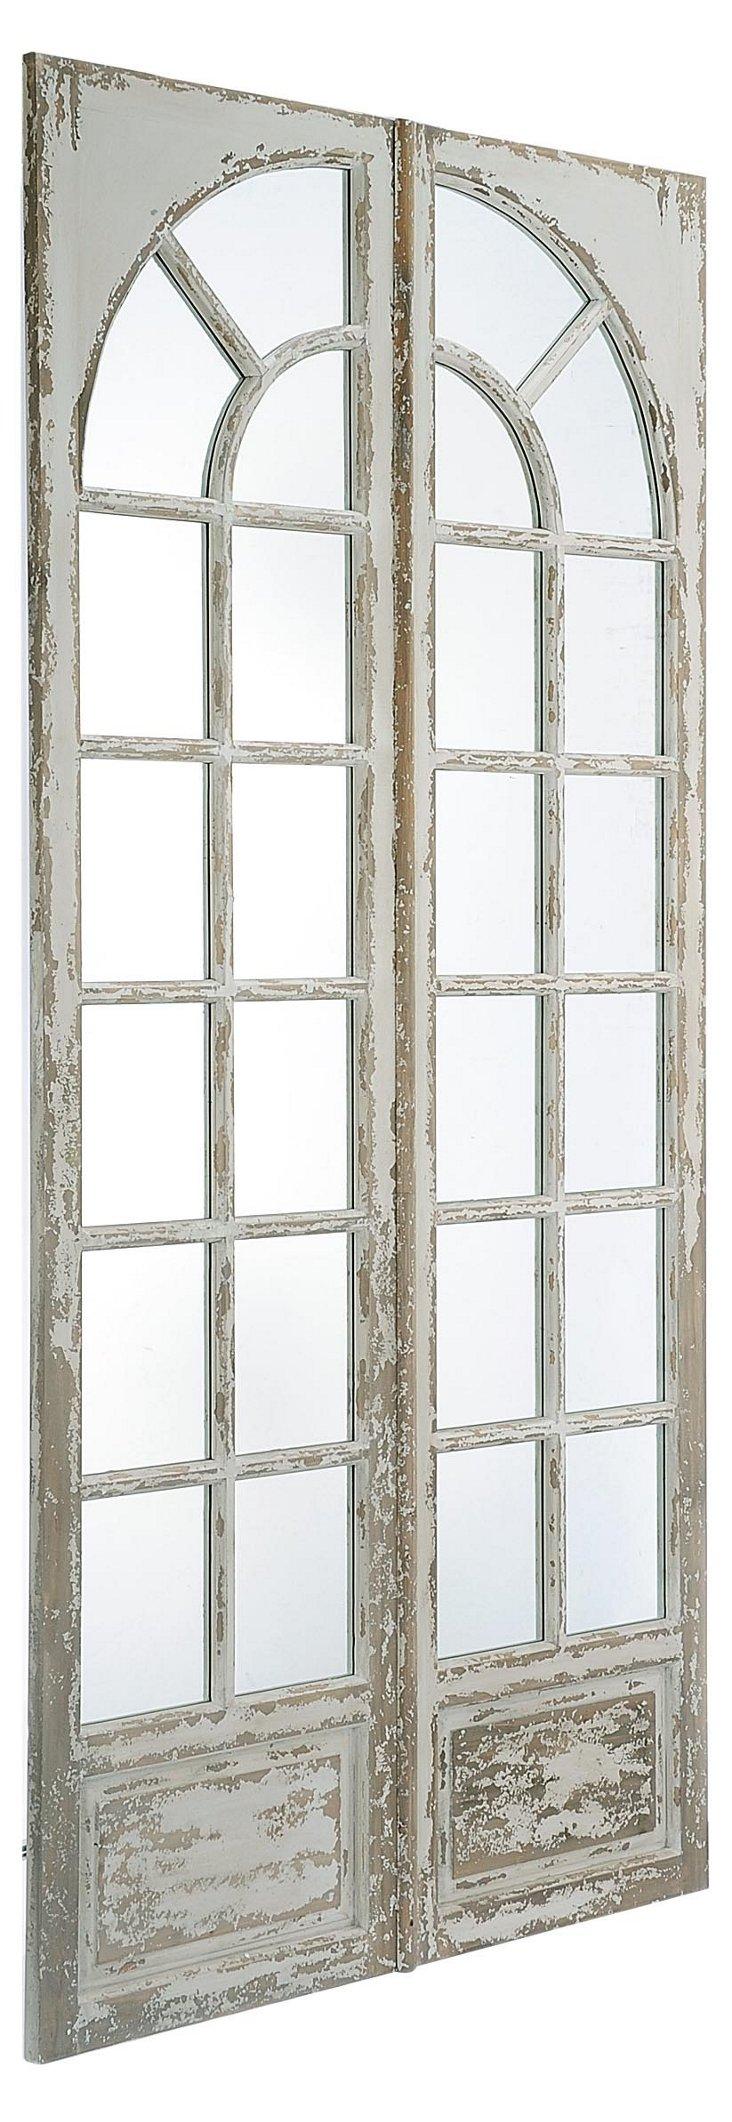 Patio Door Mirror, Distressed White